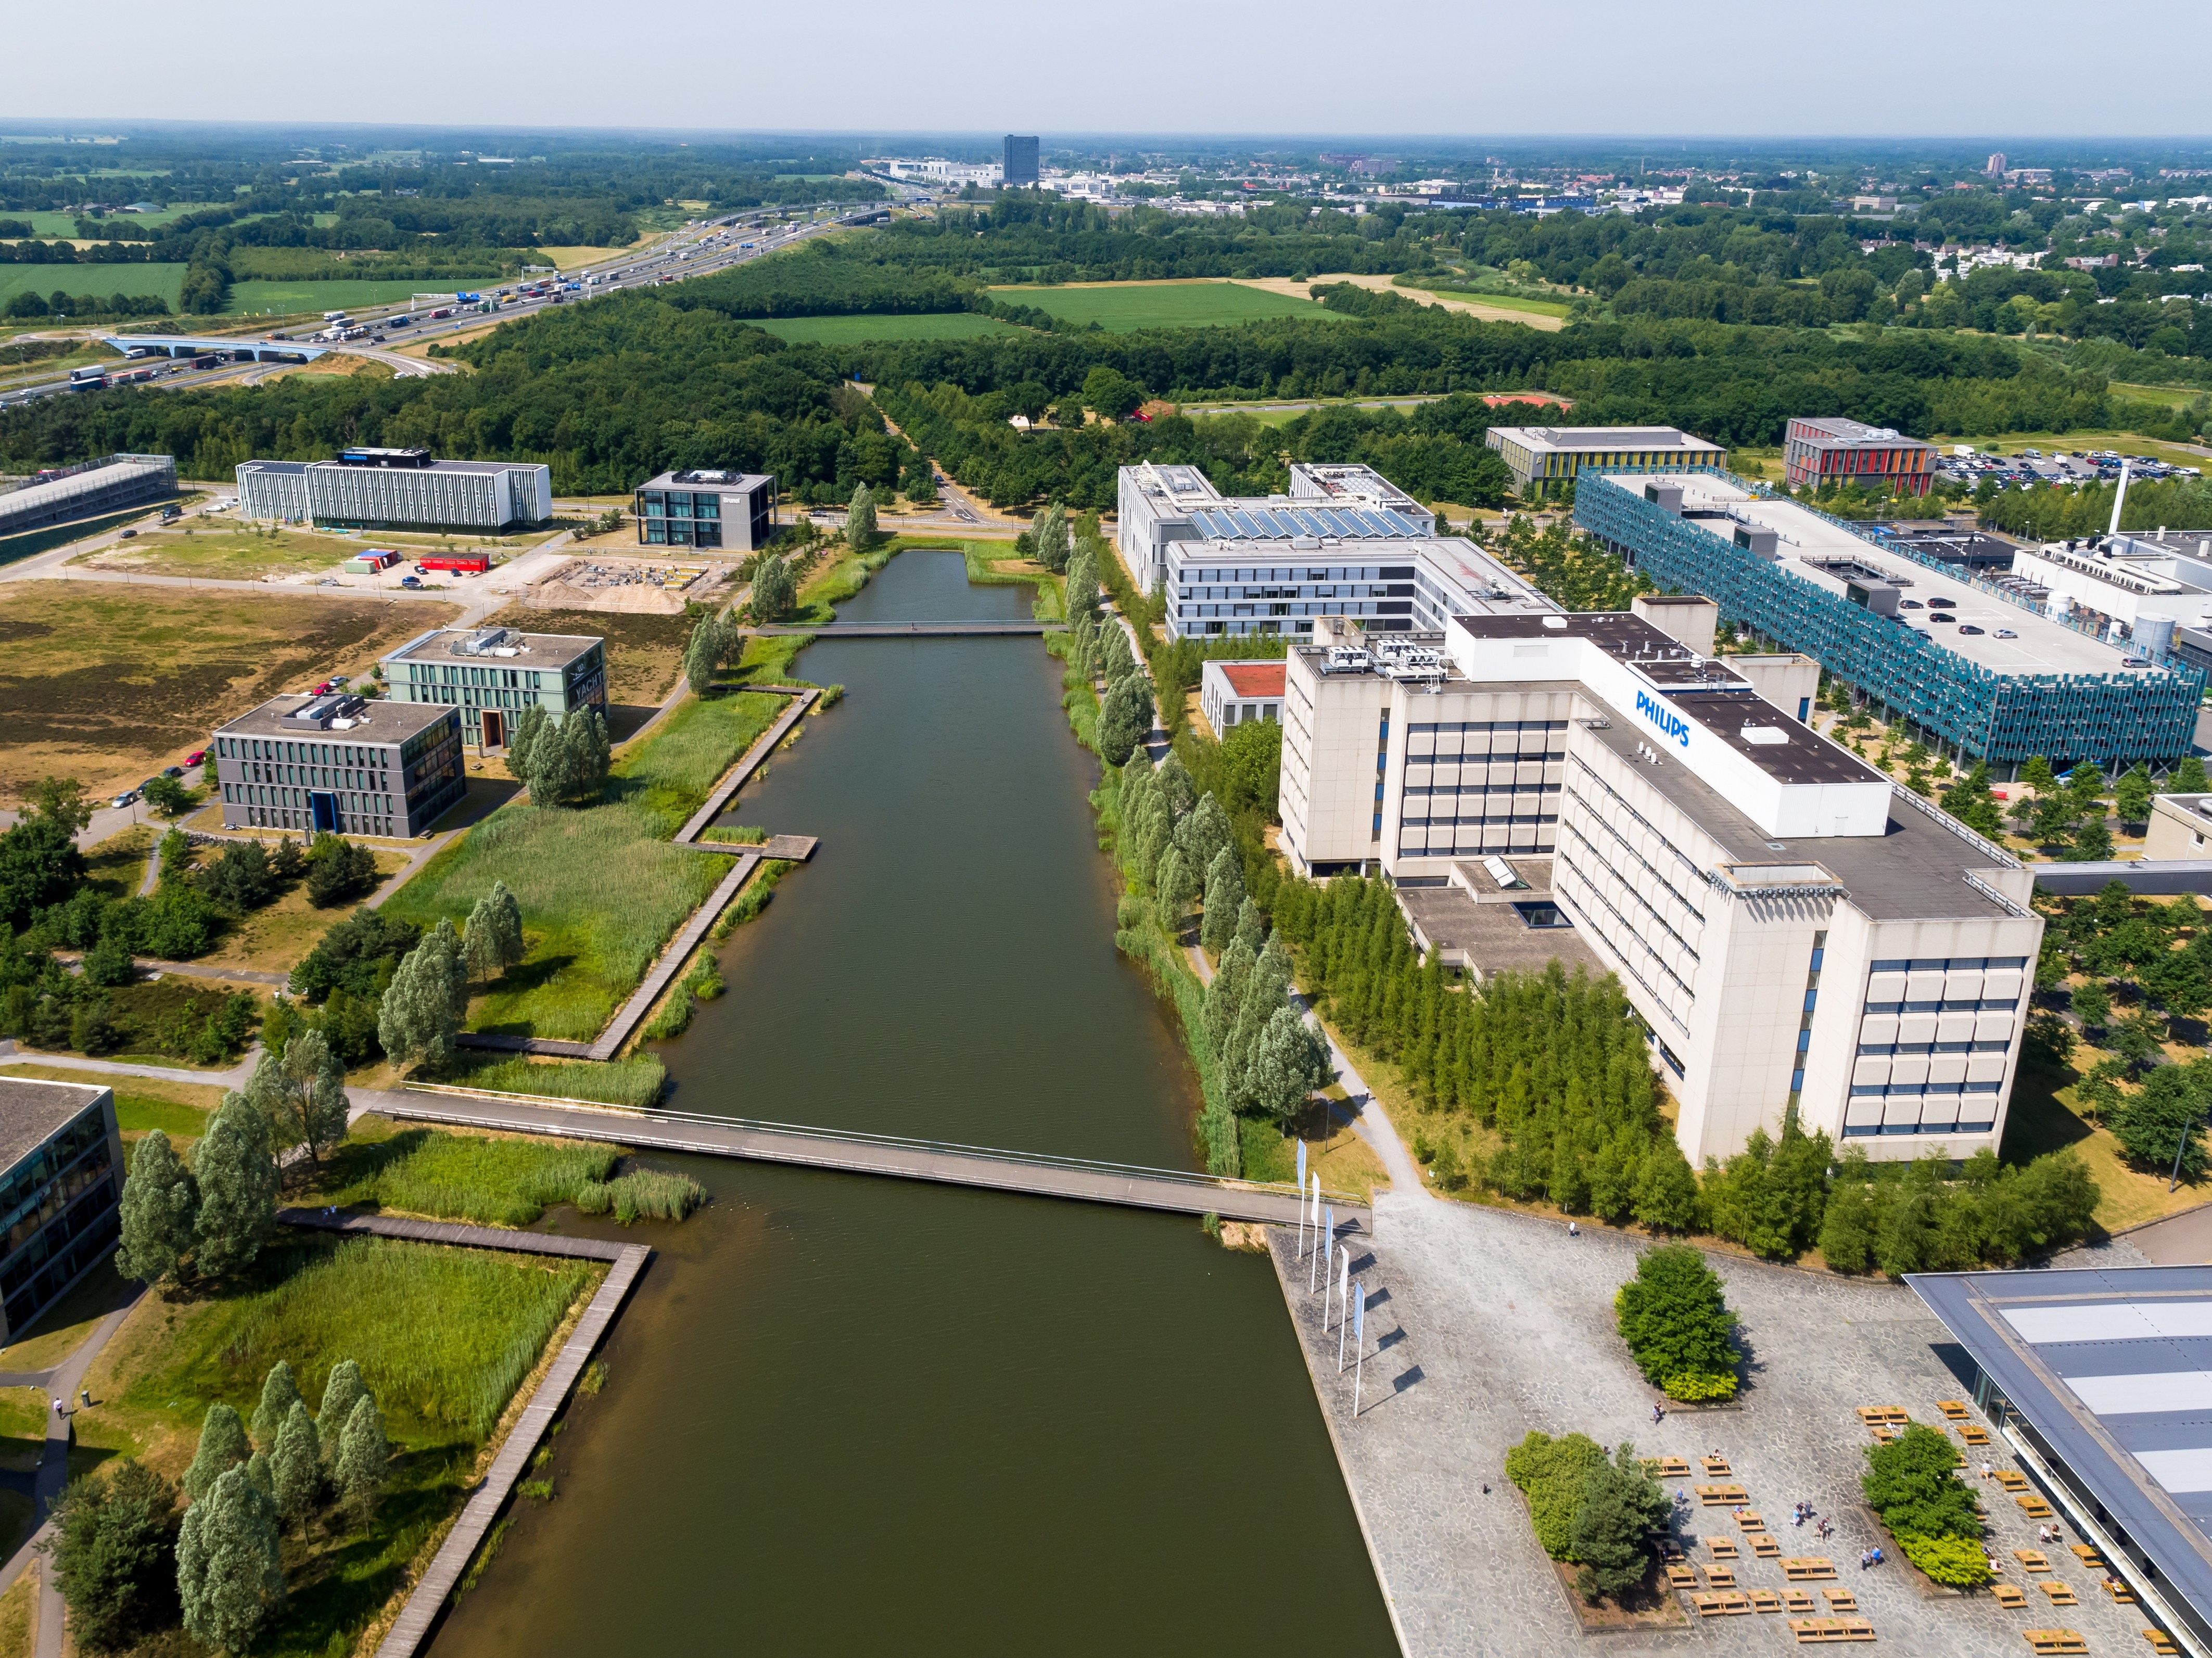 High Tech Campus Eindhoven remains ahead in innovation related expenditures